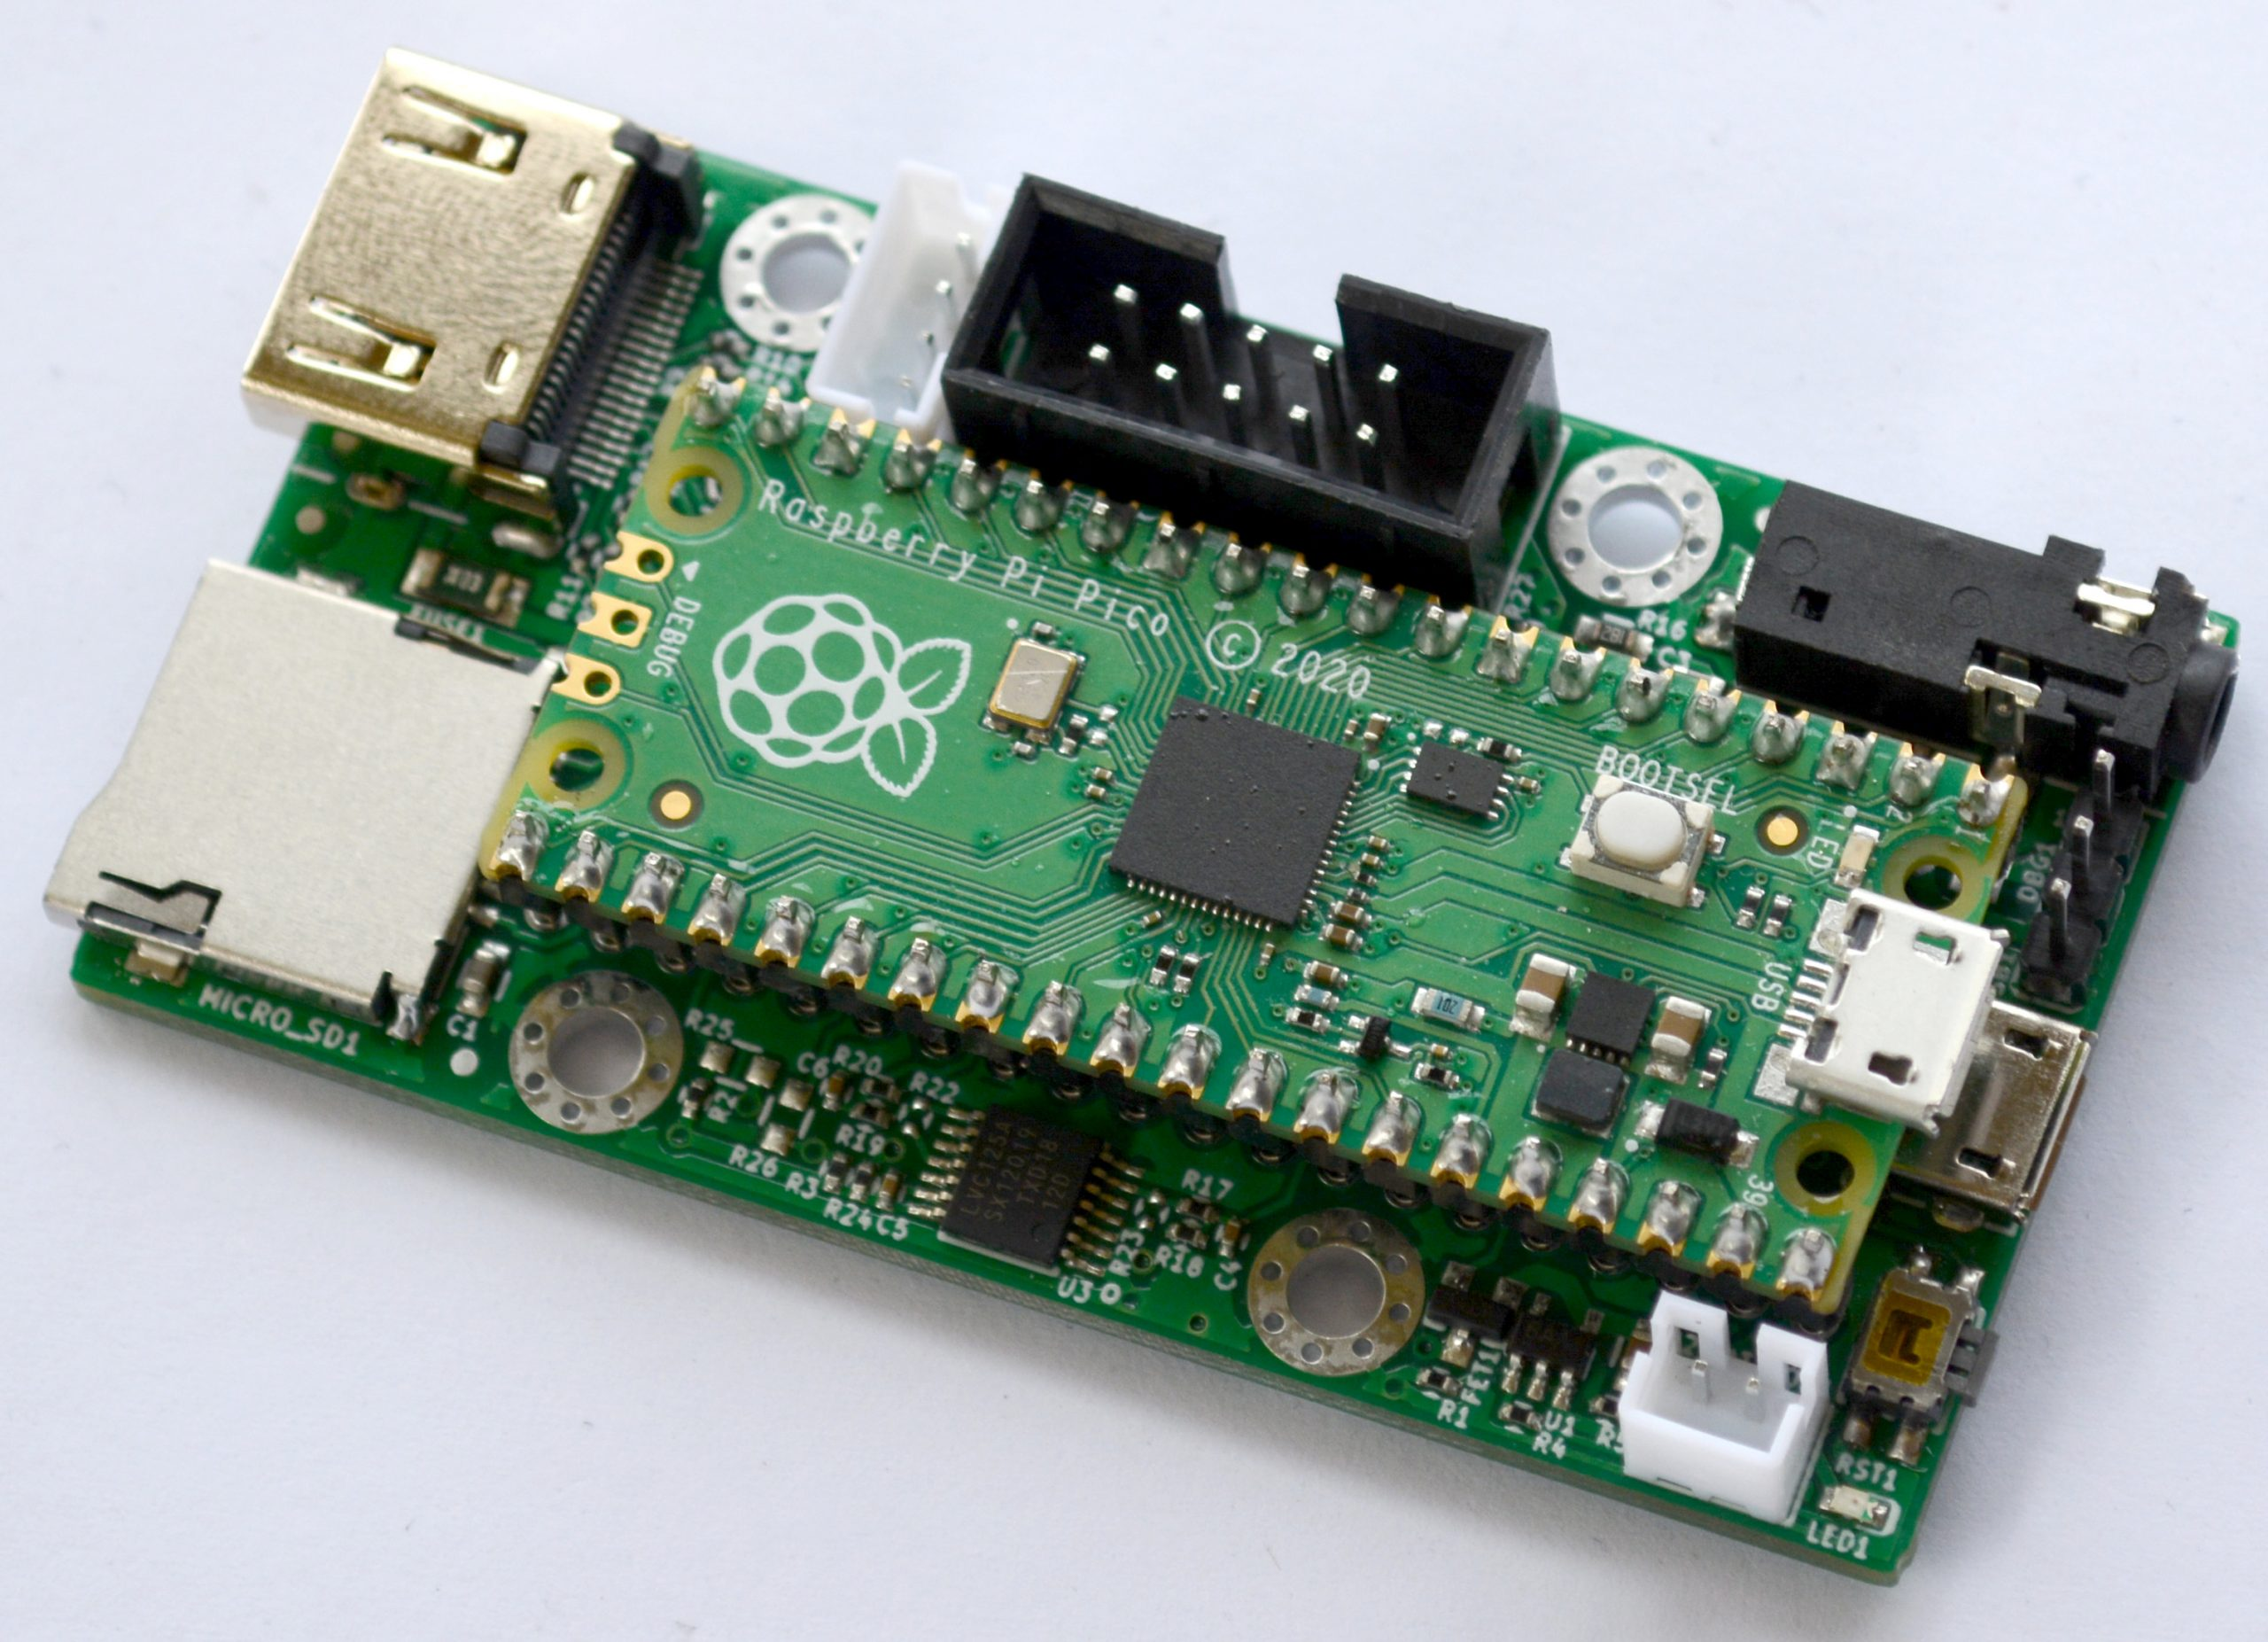 Olimex RP2040-PICO-PC Computer Made with RP2040-Py module compatible with Raspberry Pi Pico